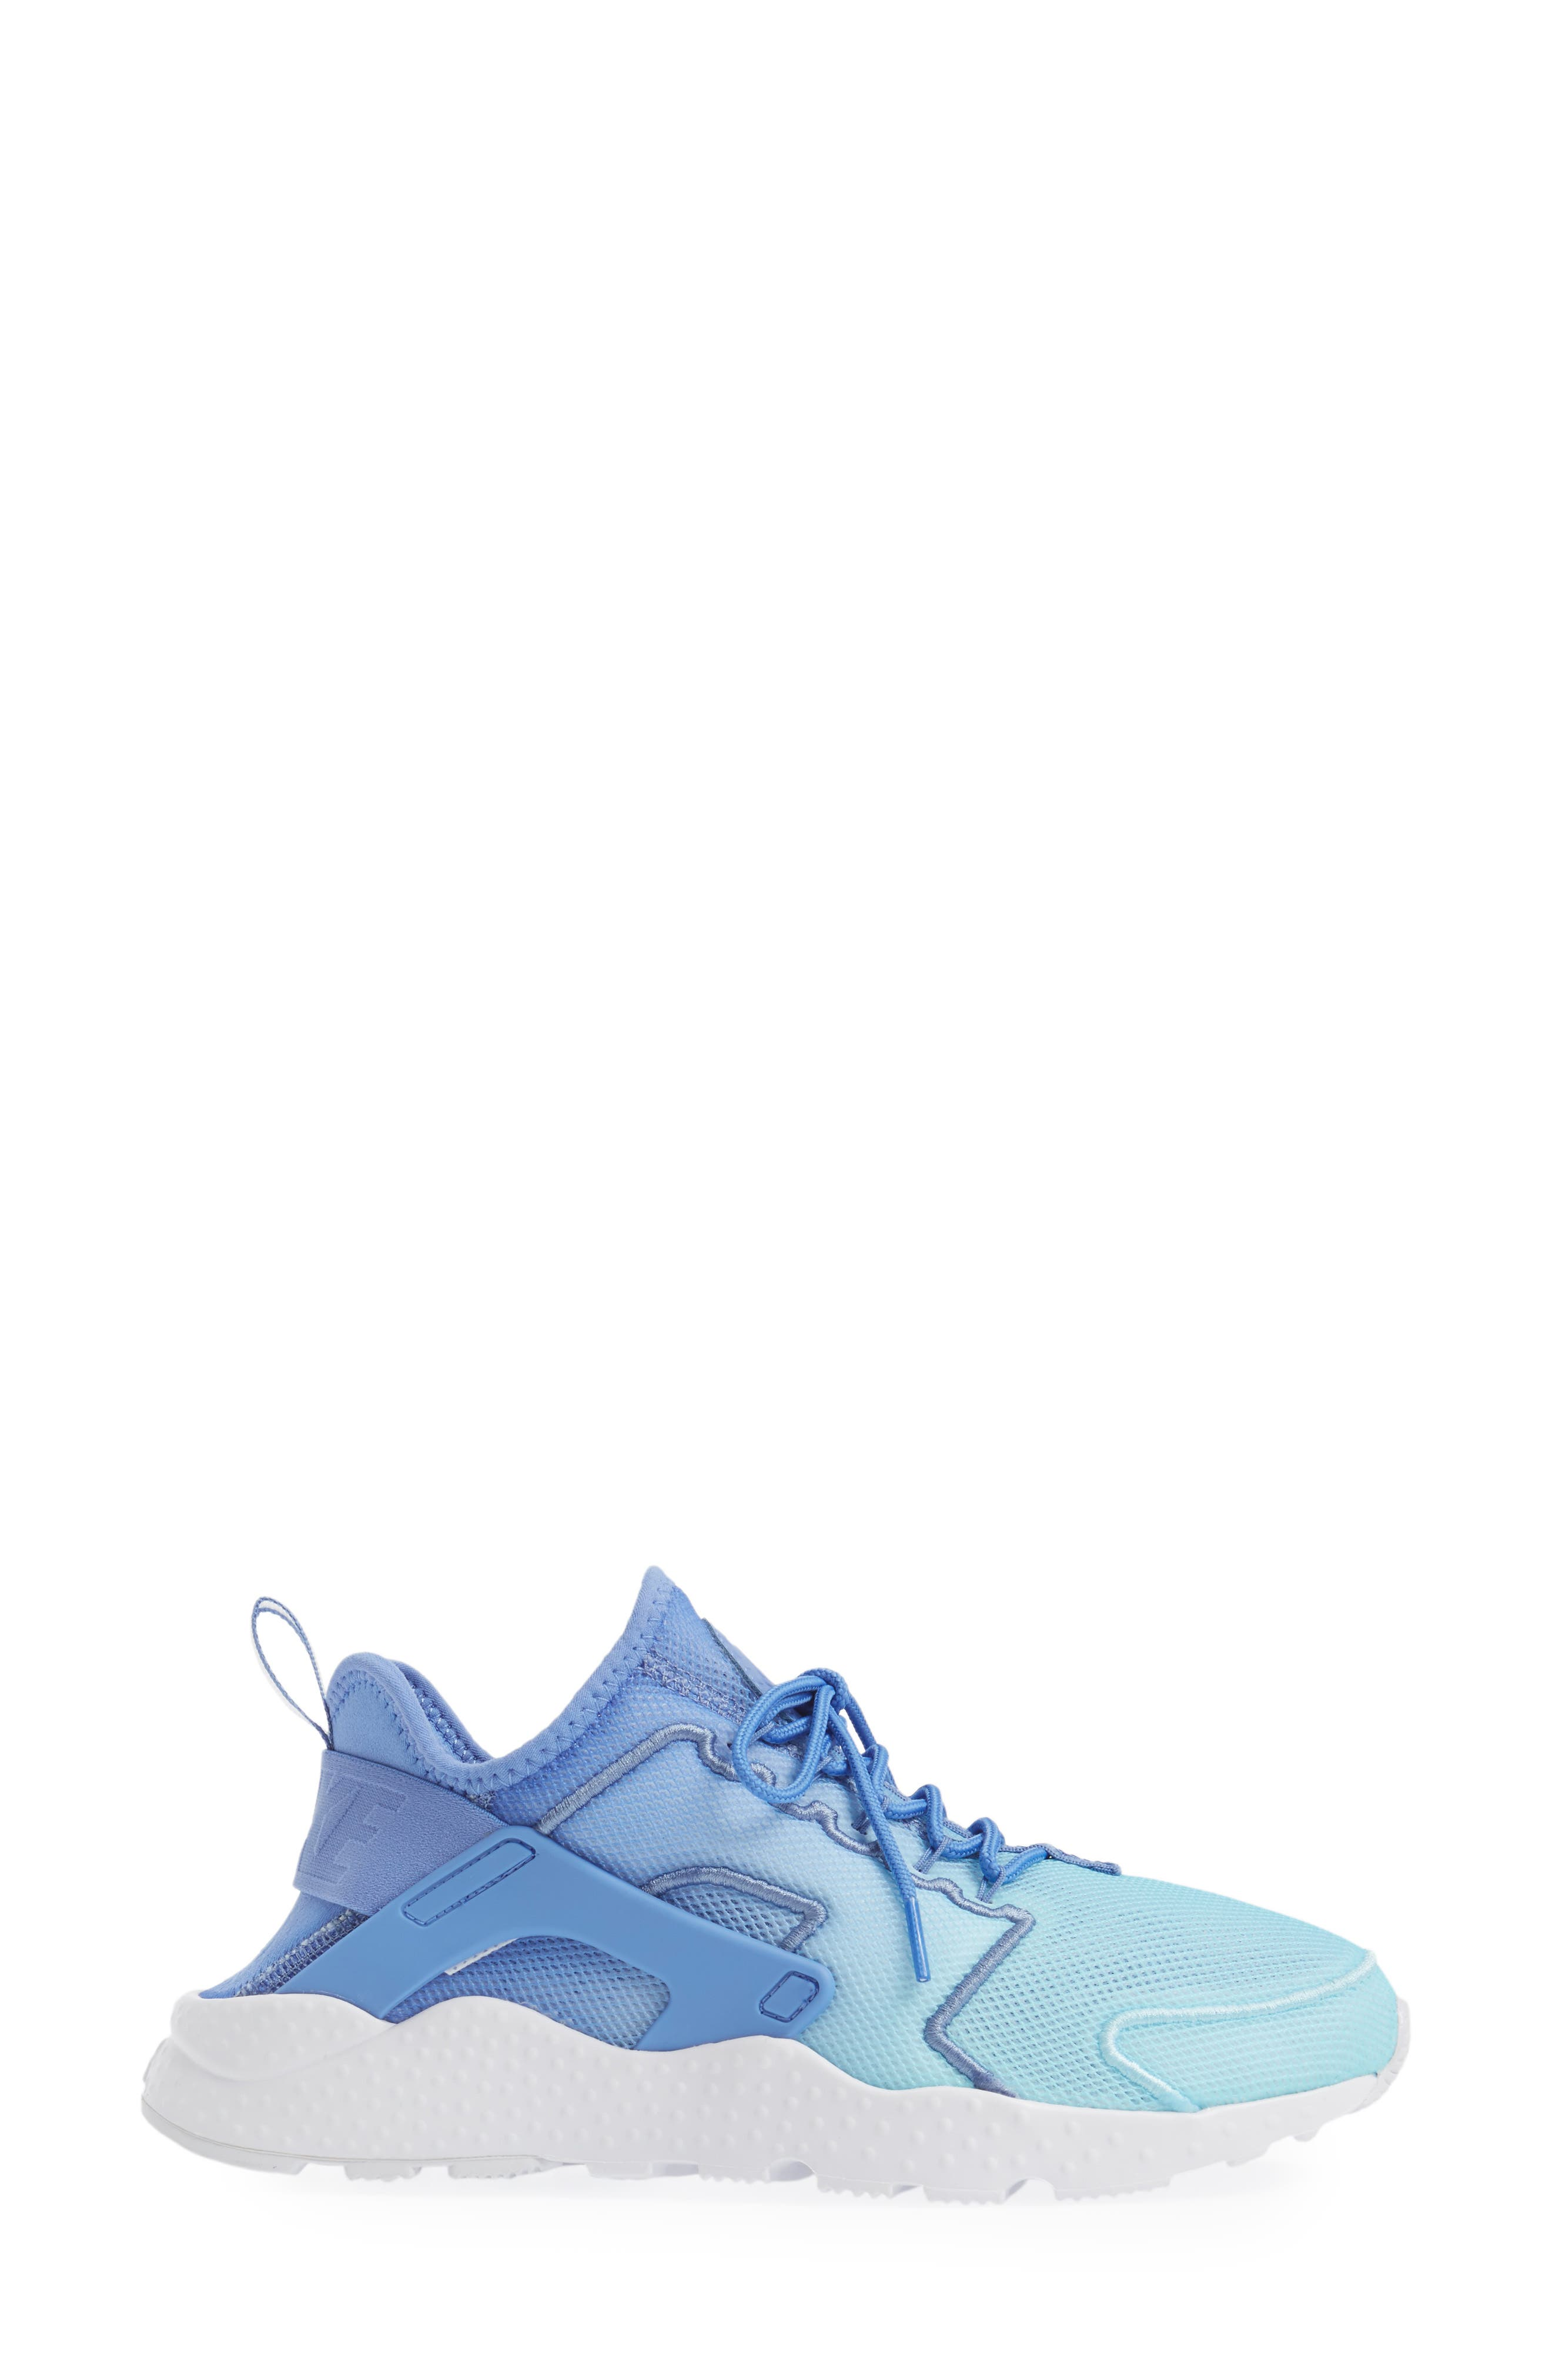 Alternate Image 3  - Nike 'Air Huarache Run Ultra Mesh' Sneaker (Women)